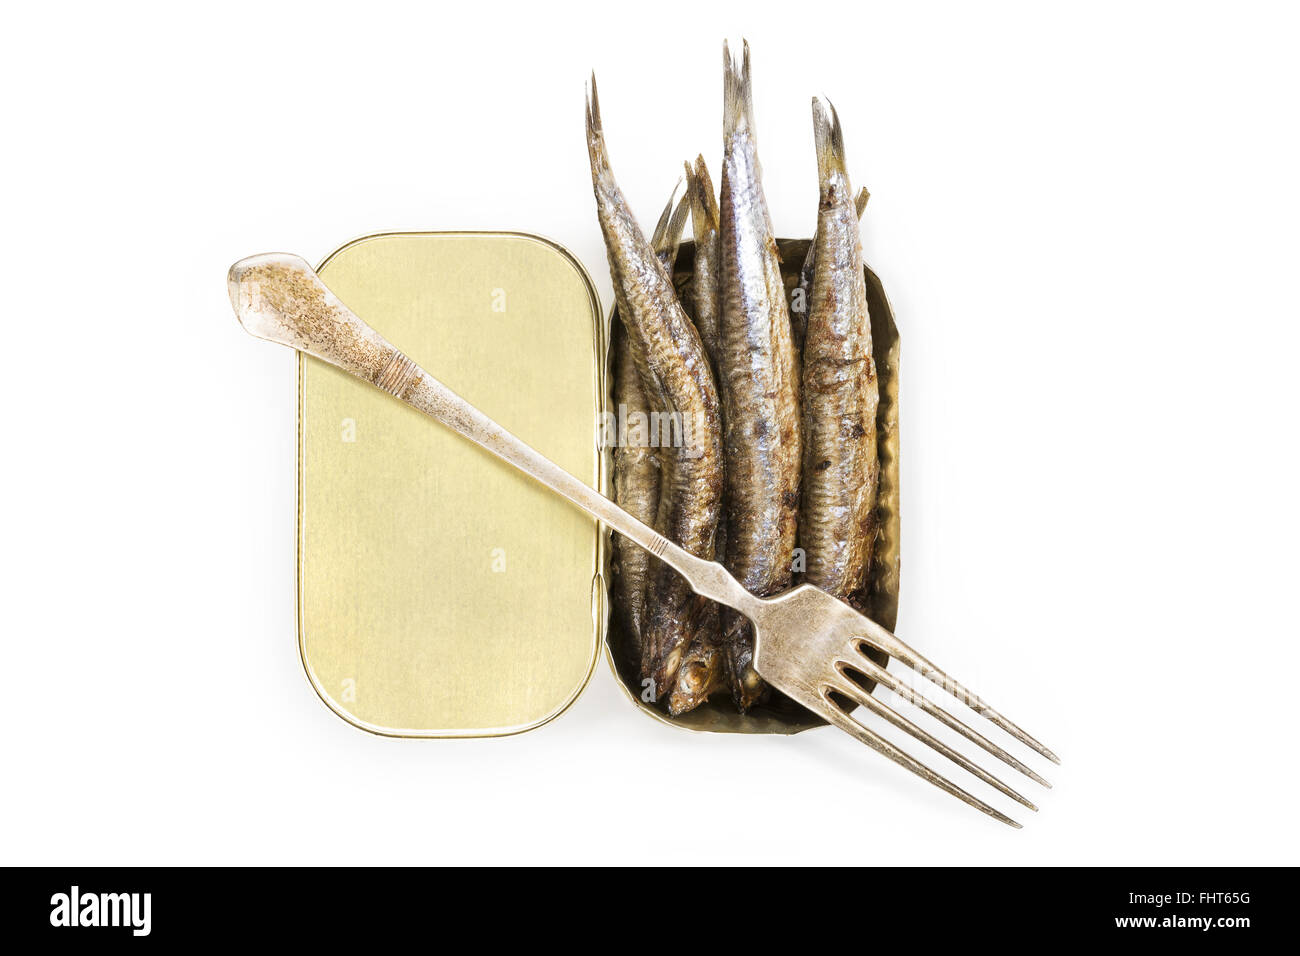 Grilled anchovies. - Stock Image